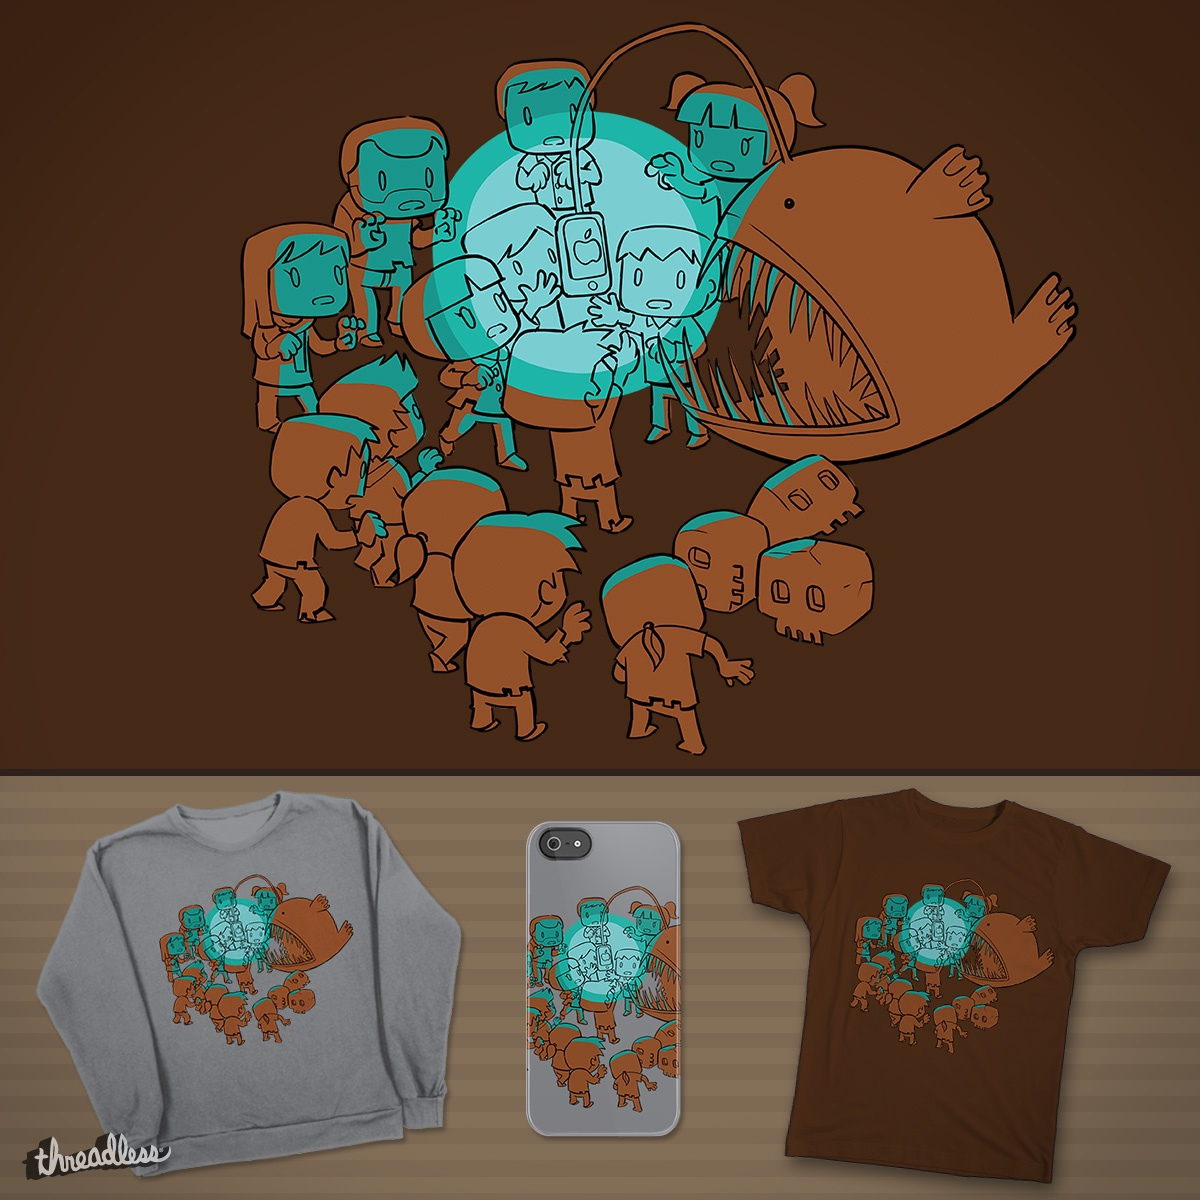 Luminous Lure, a cool t-shirt design